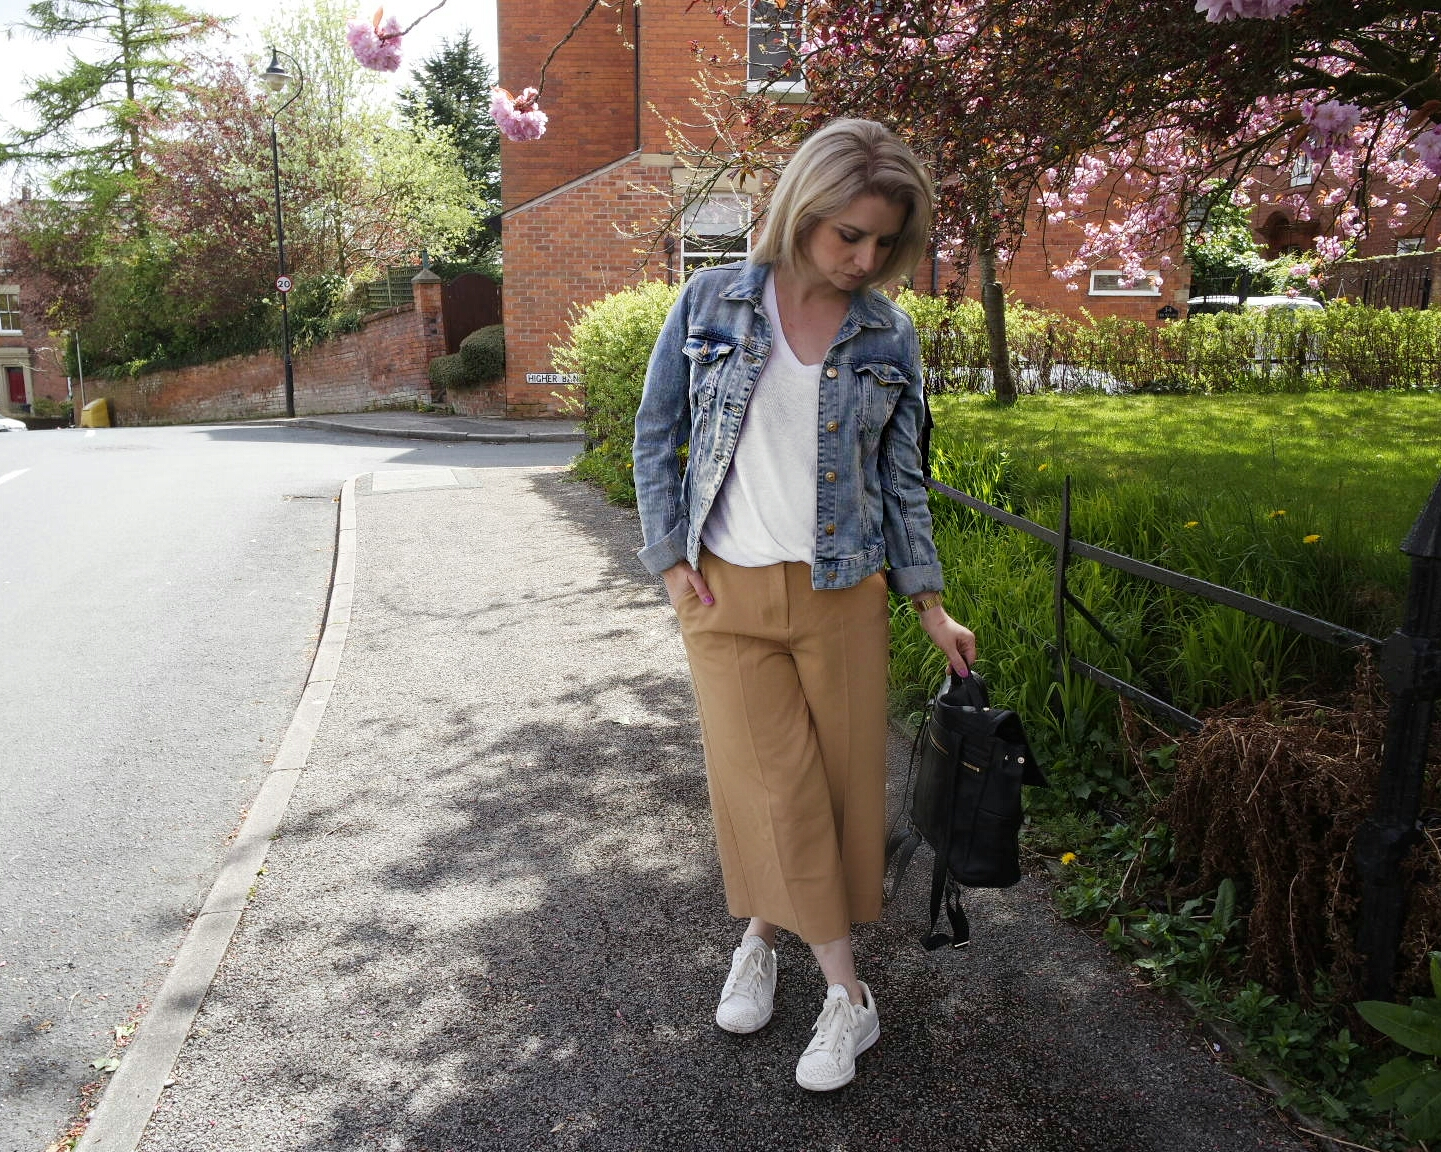 River Island Camel Culottes, Asos White Tee, H&M Denim Jacket, Adidas Stan Smiths and Marks and Spencer Leather Back pack.